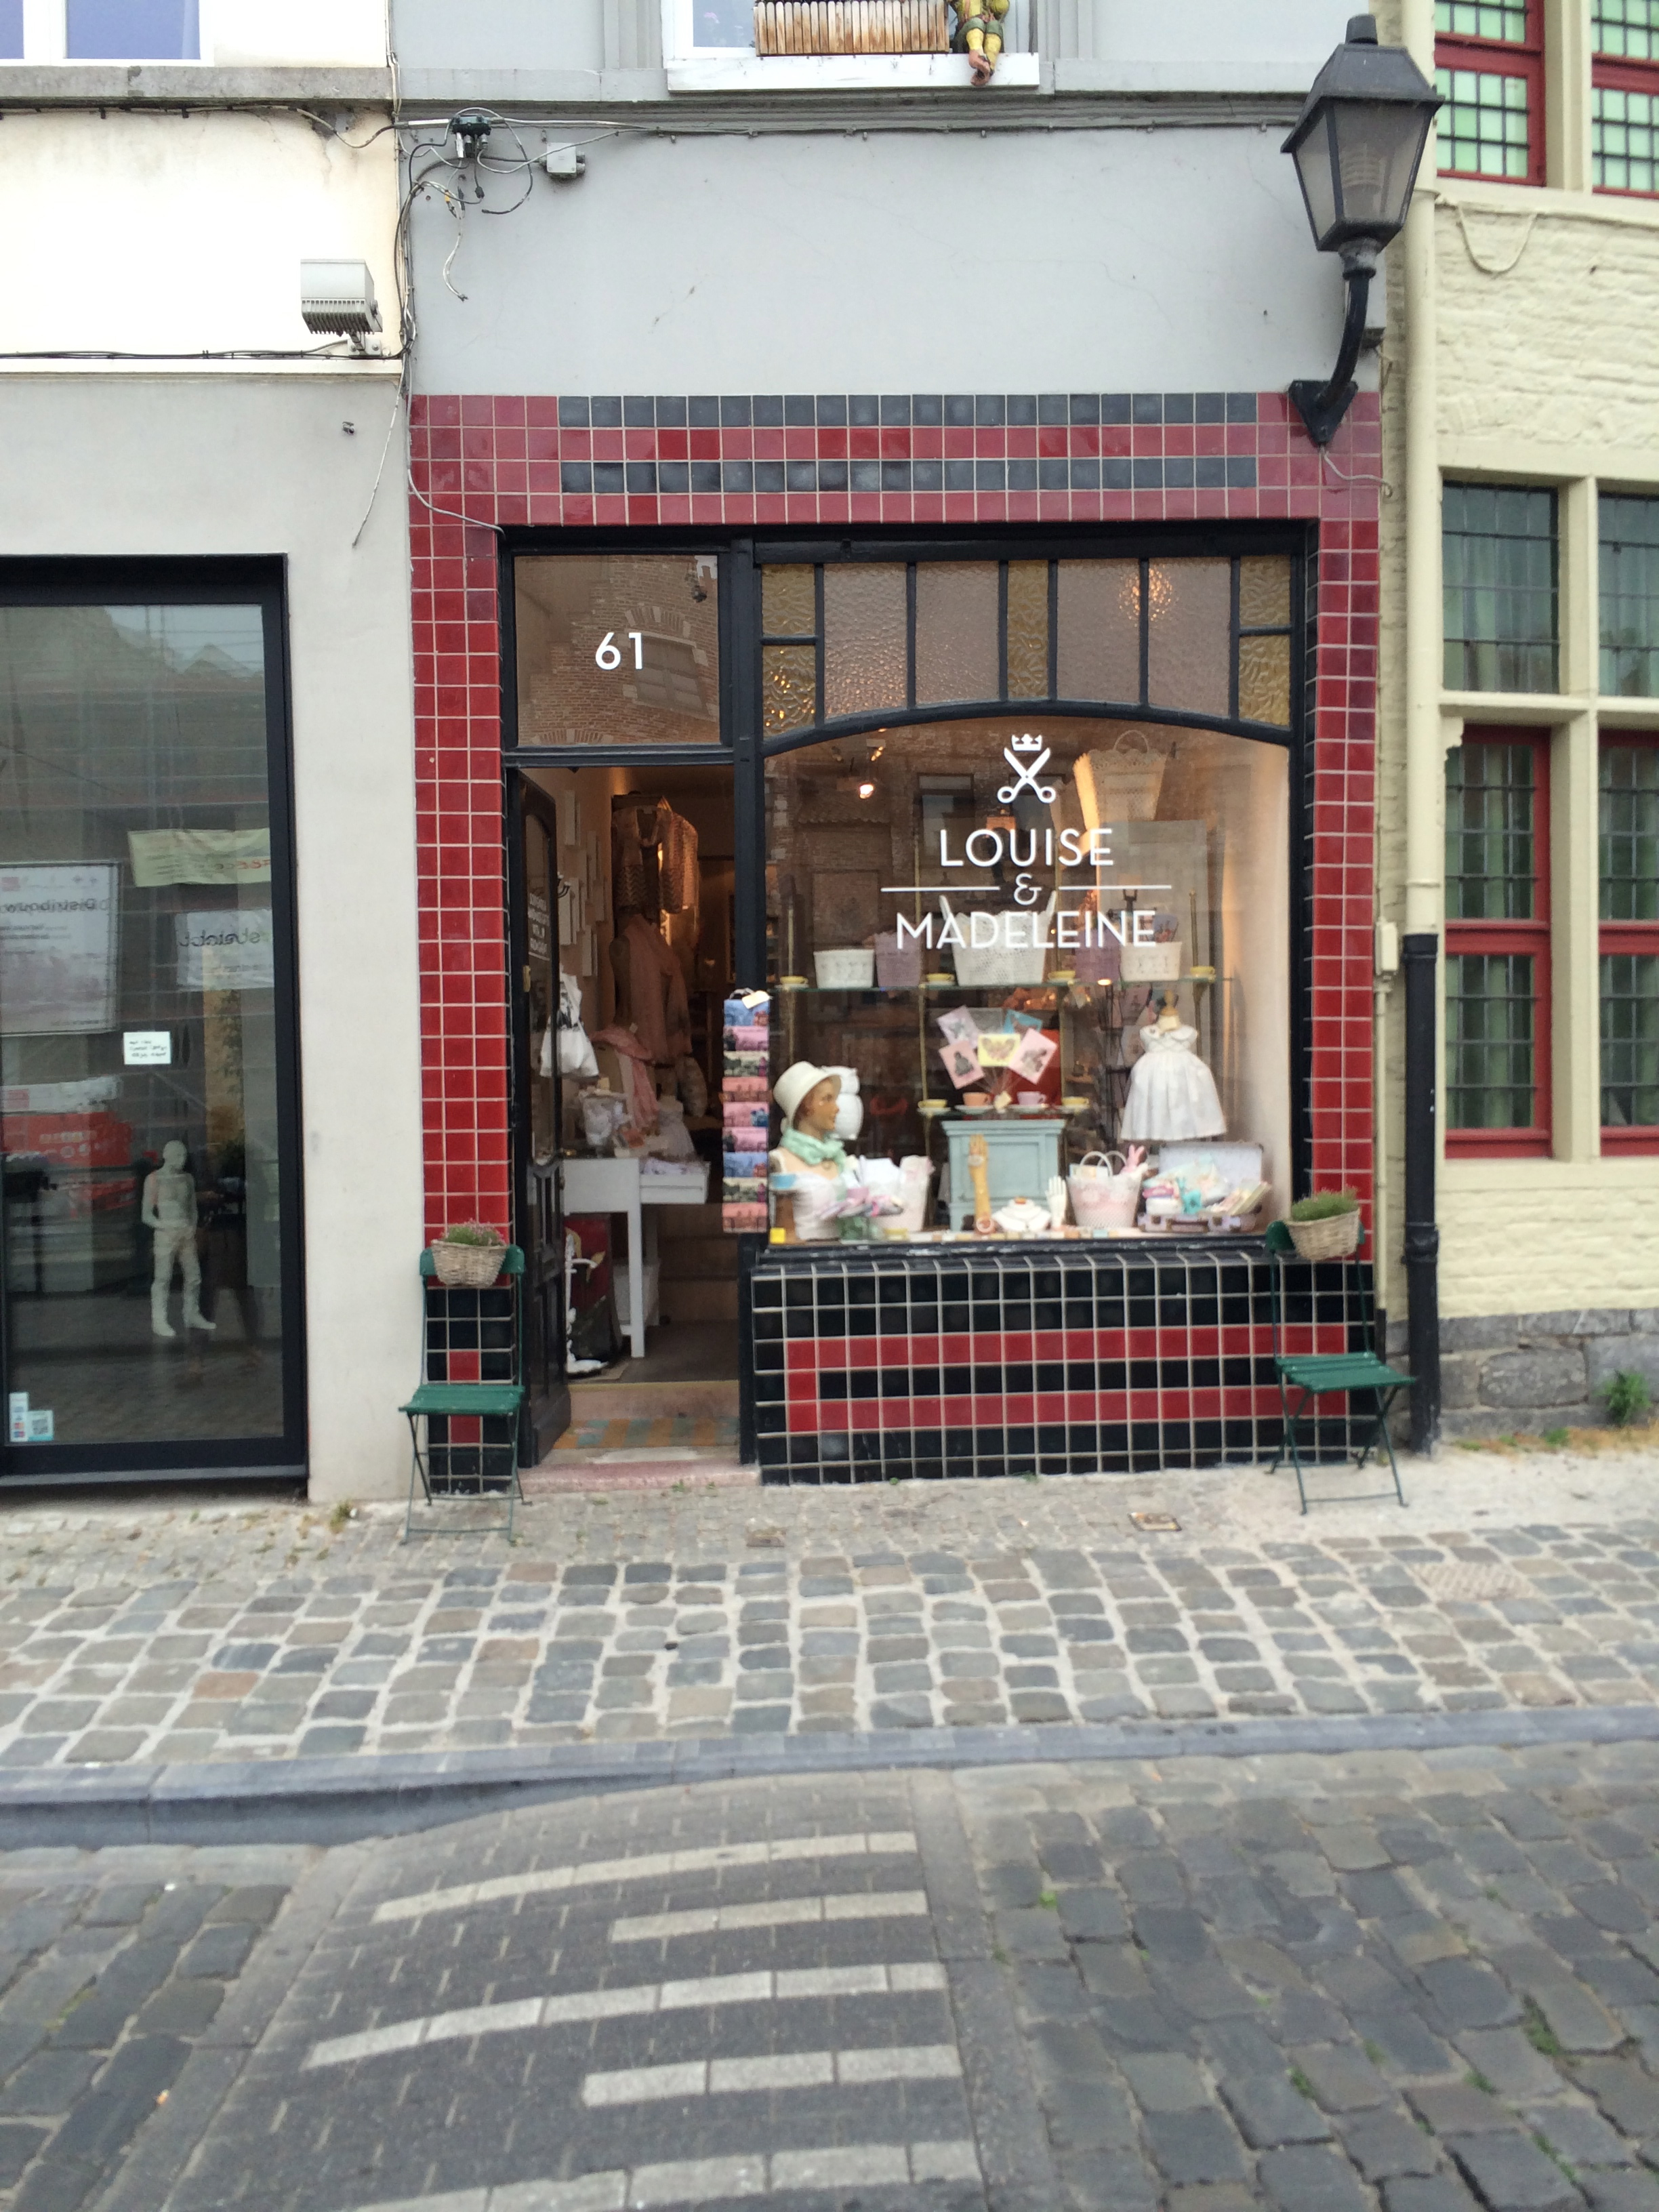 Louise and madeleine childrens shop in Ghent. Weekend in Belgium looking at beautiful products and stores.